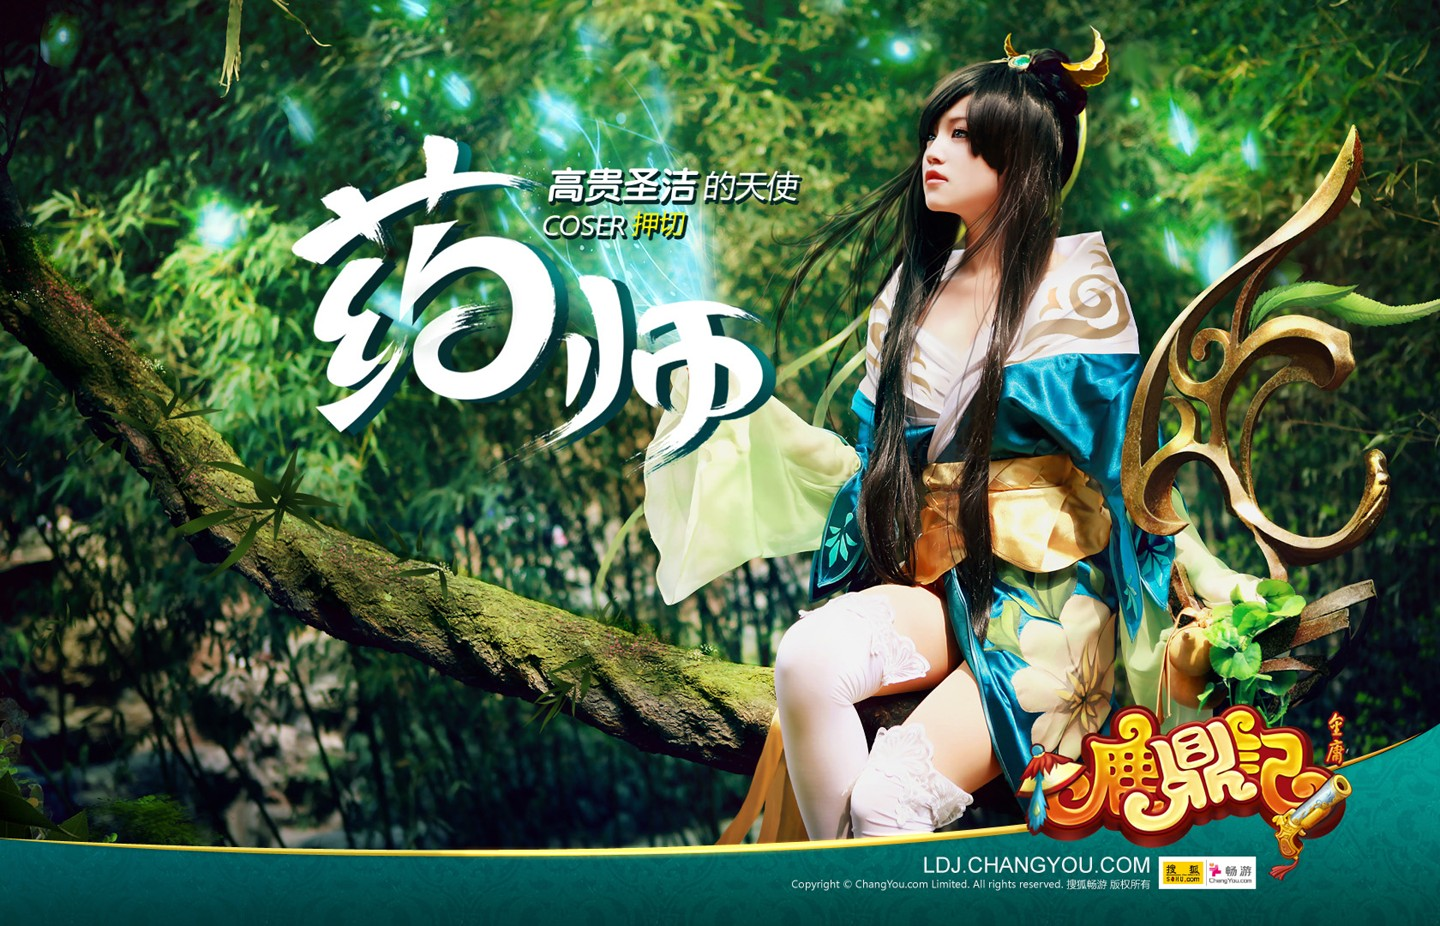 Deer Game Cosplay Official beautiful wallpaper 29882